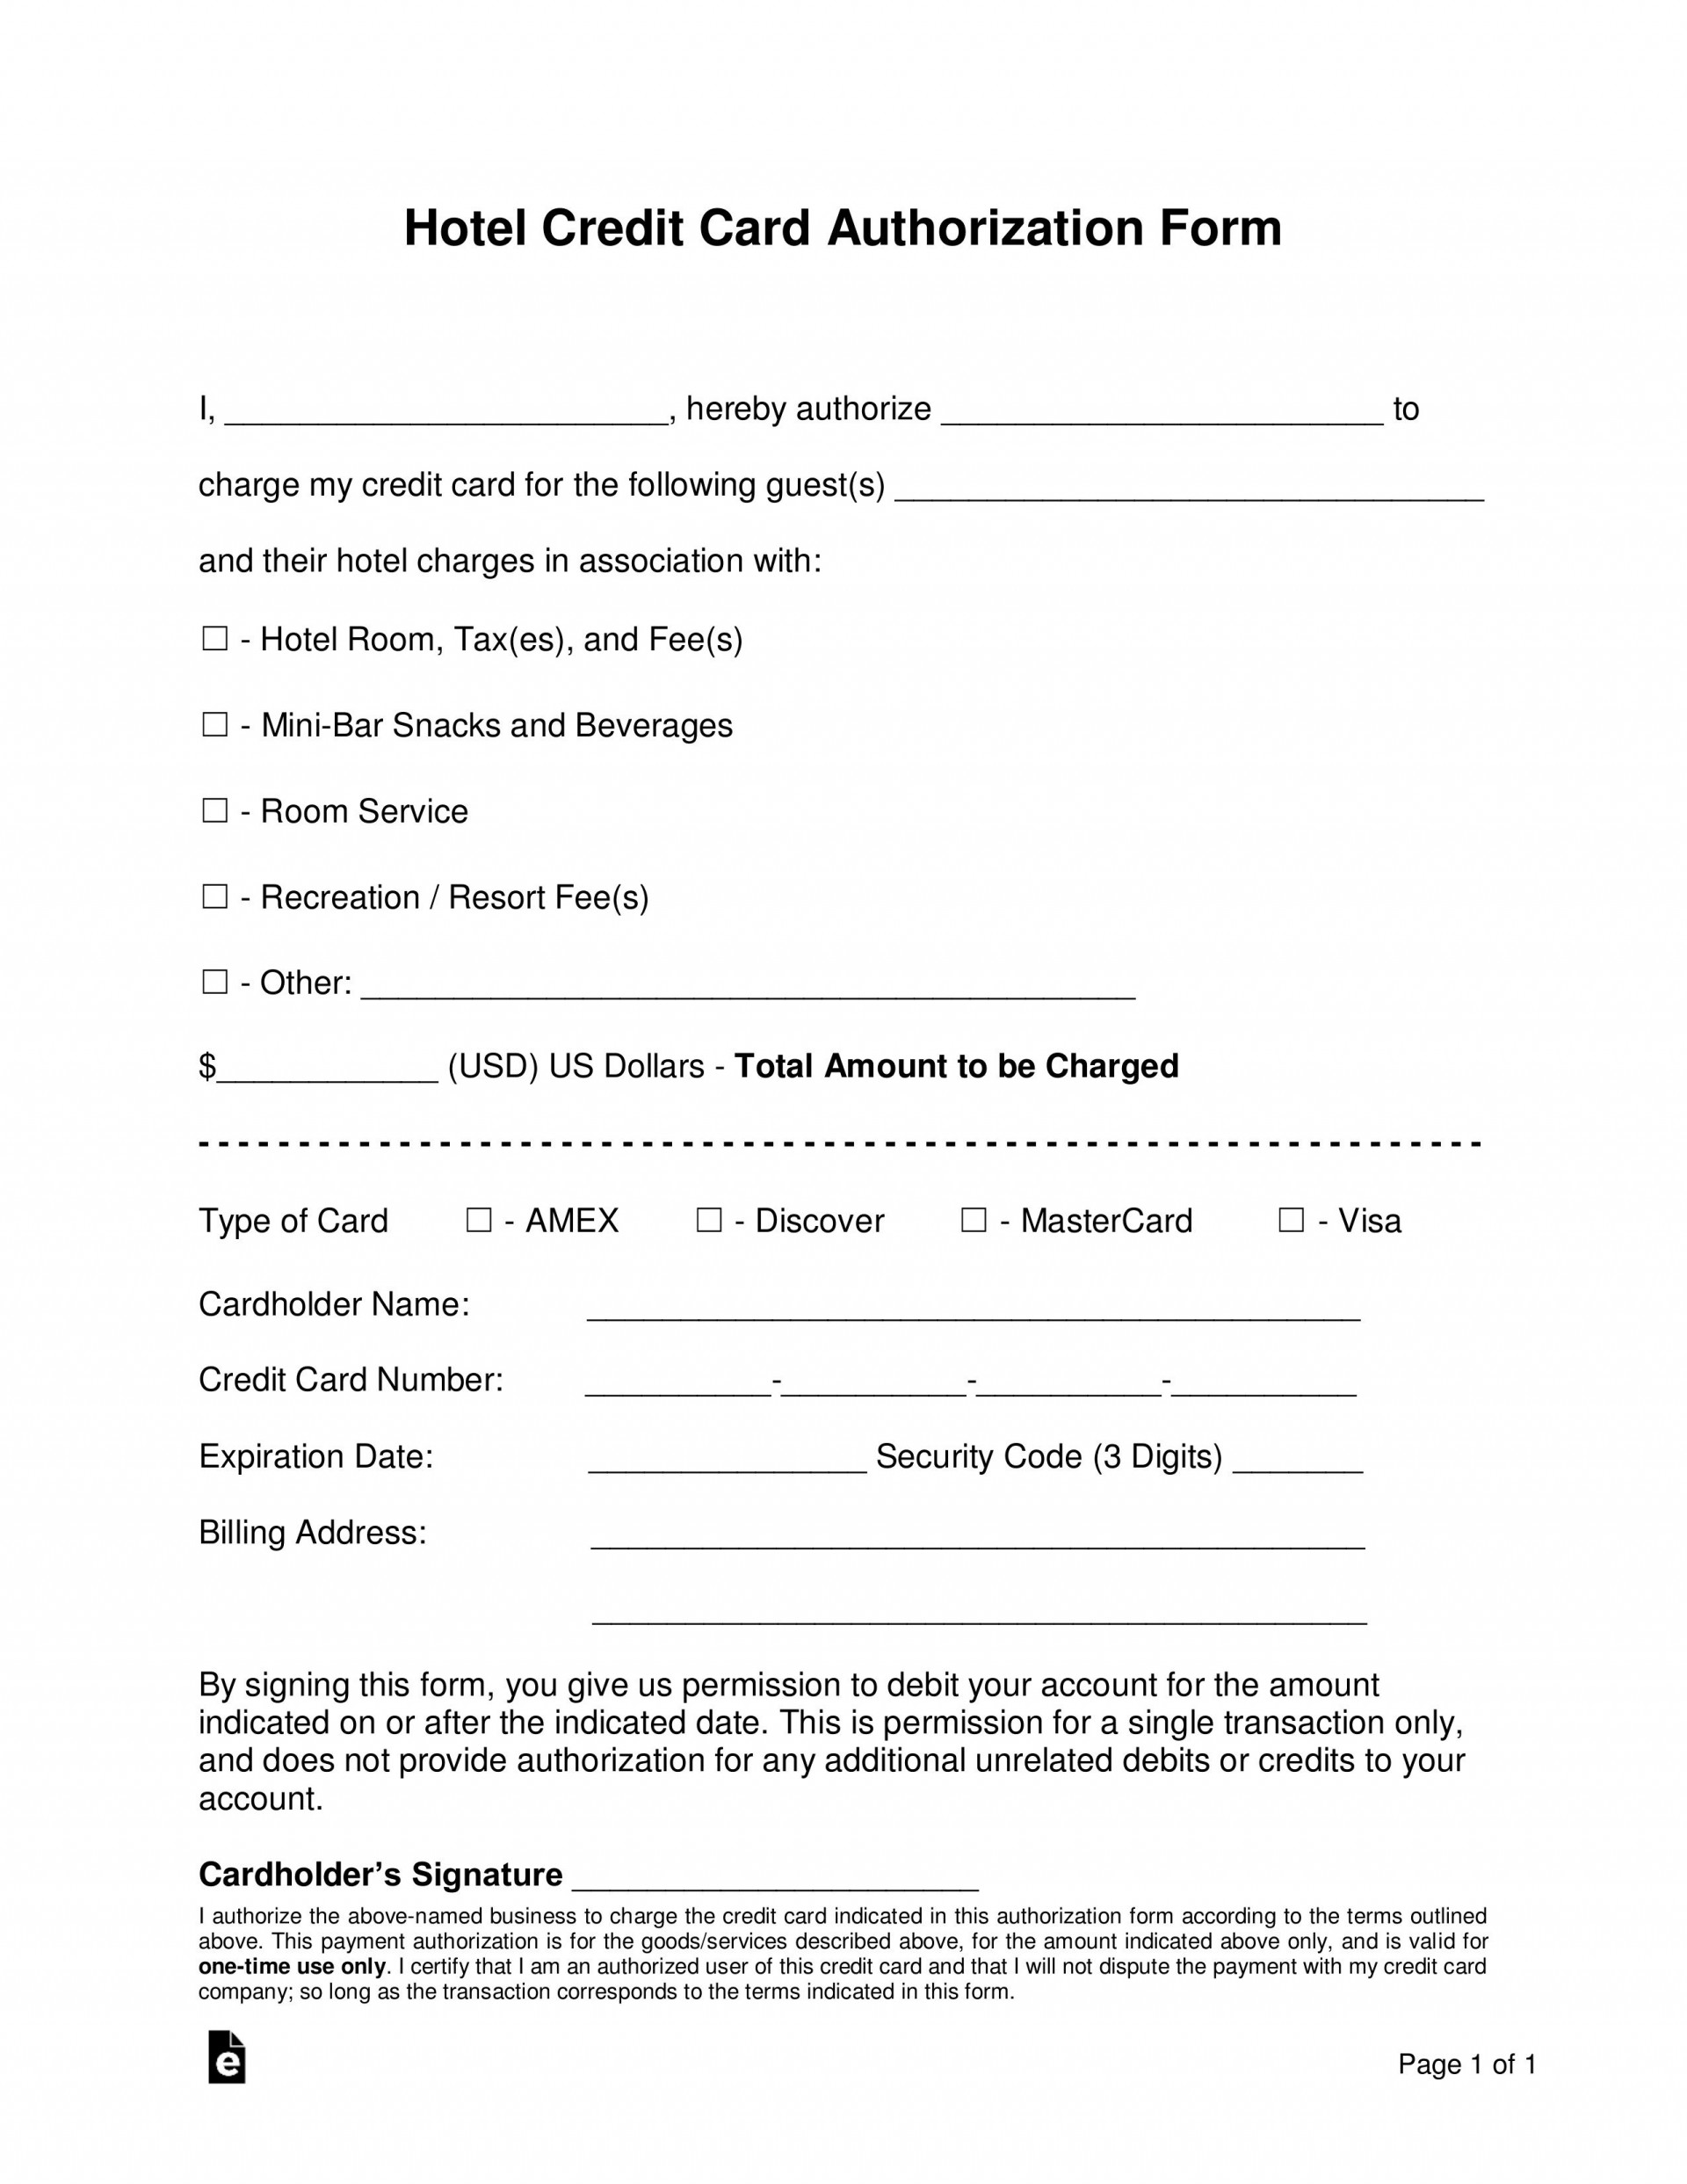 009 Remarkable Credit Card Template Word Highest Clarity  Authorization Hotel Form Slip1920